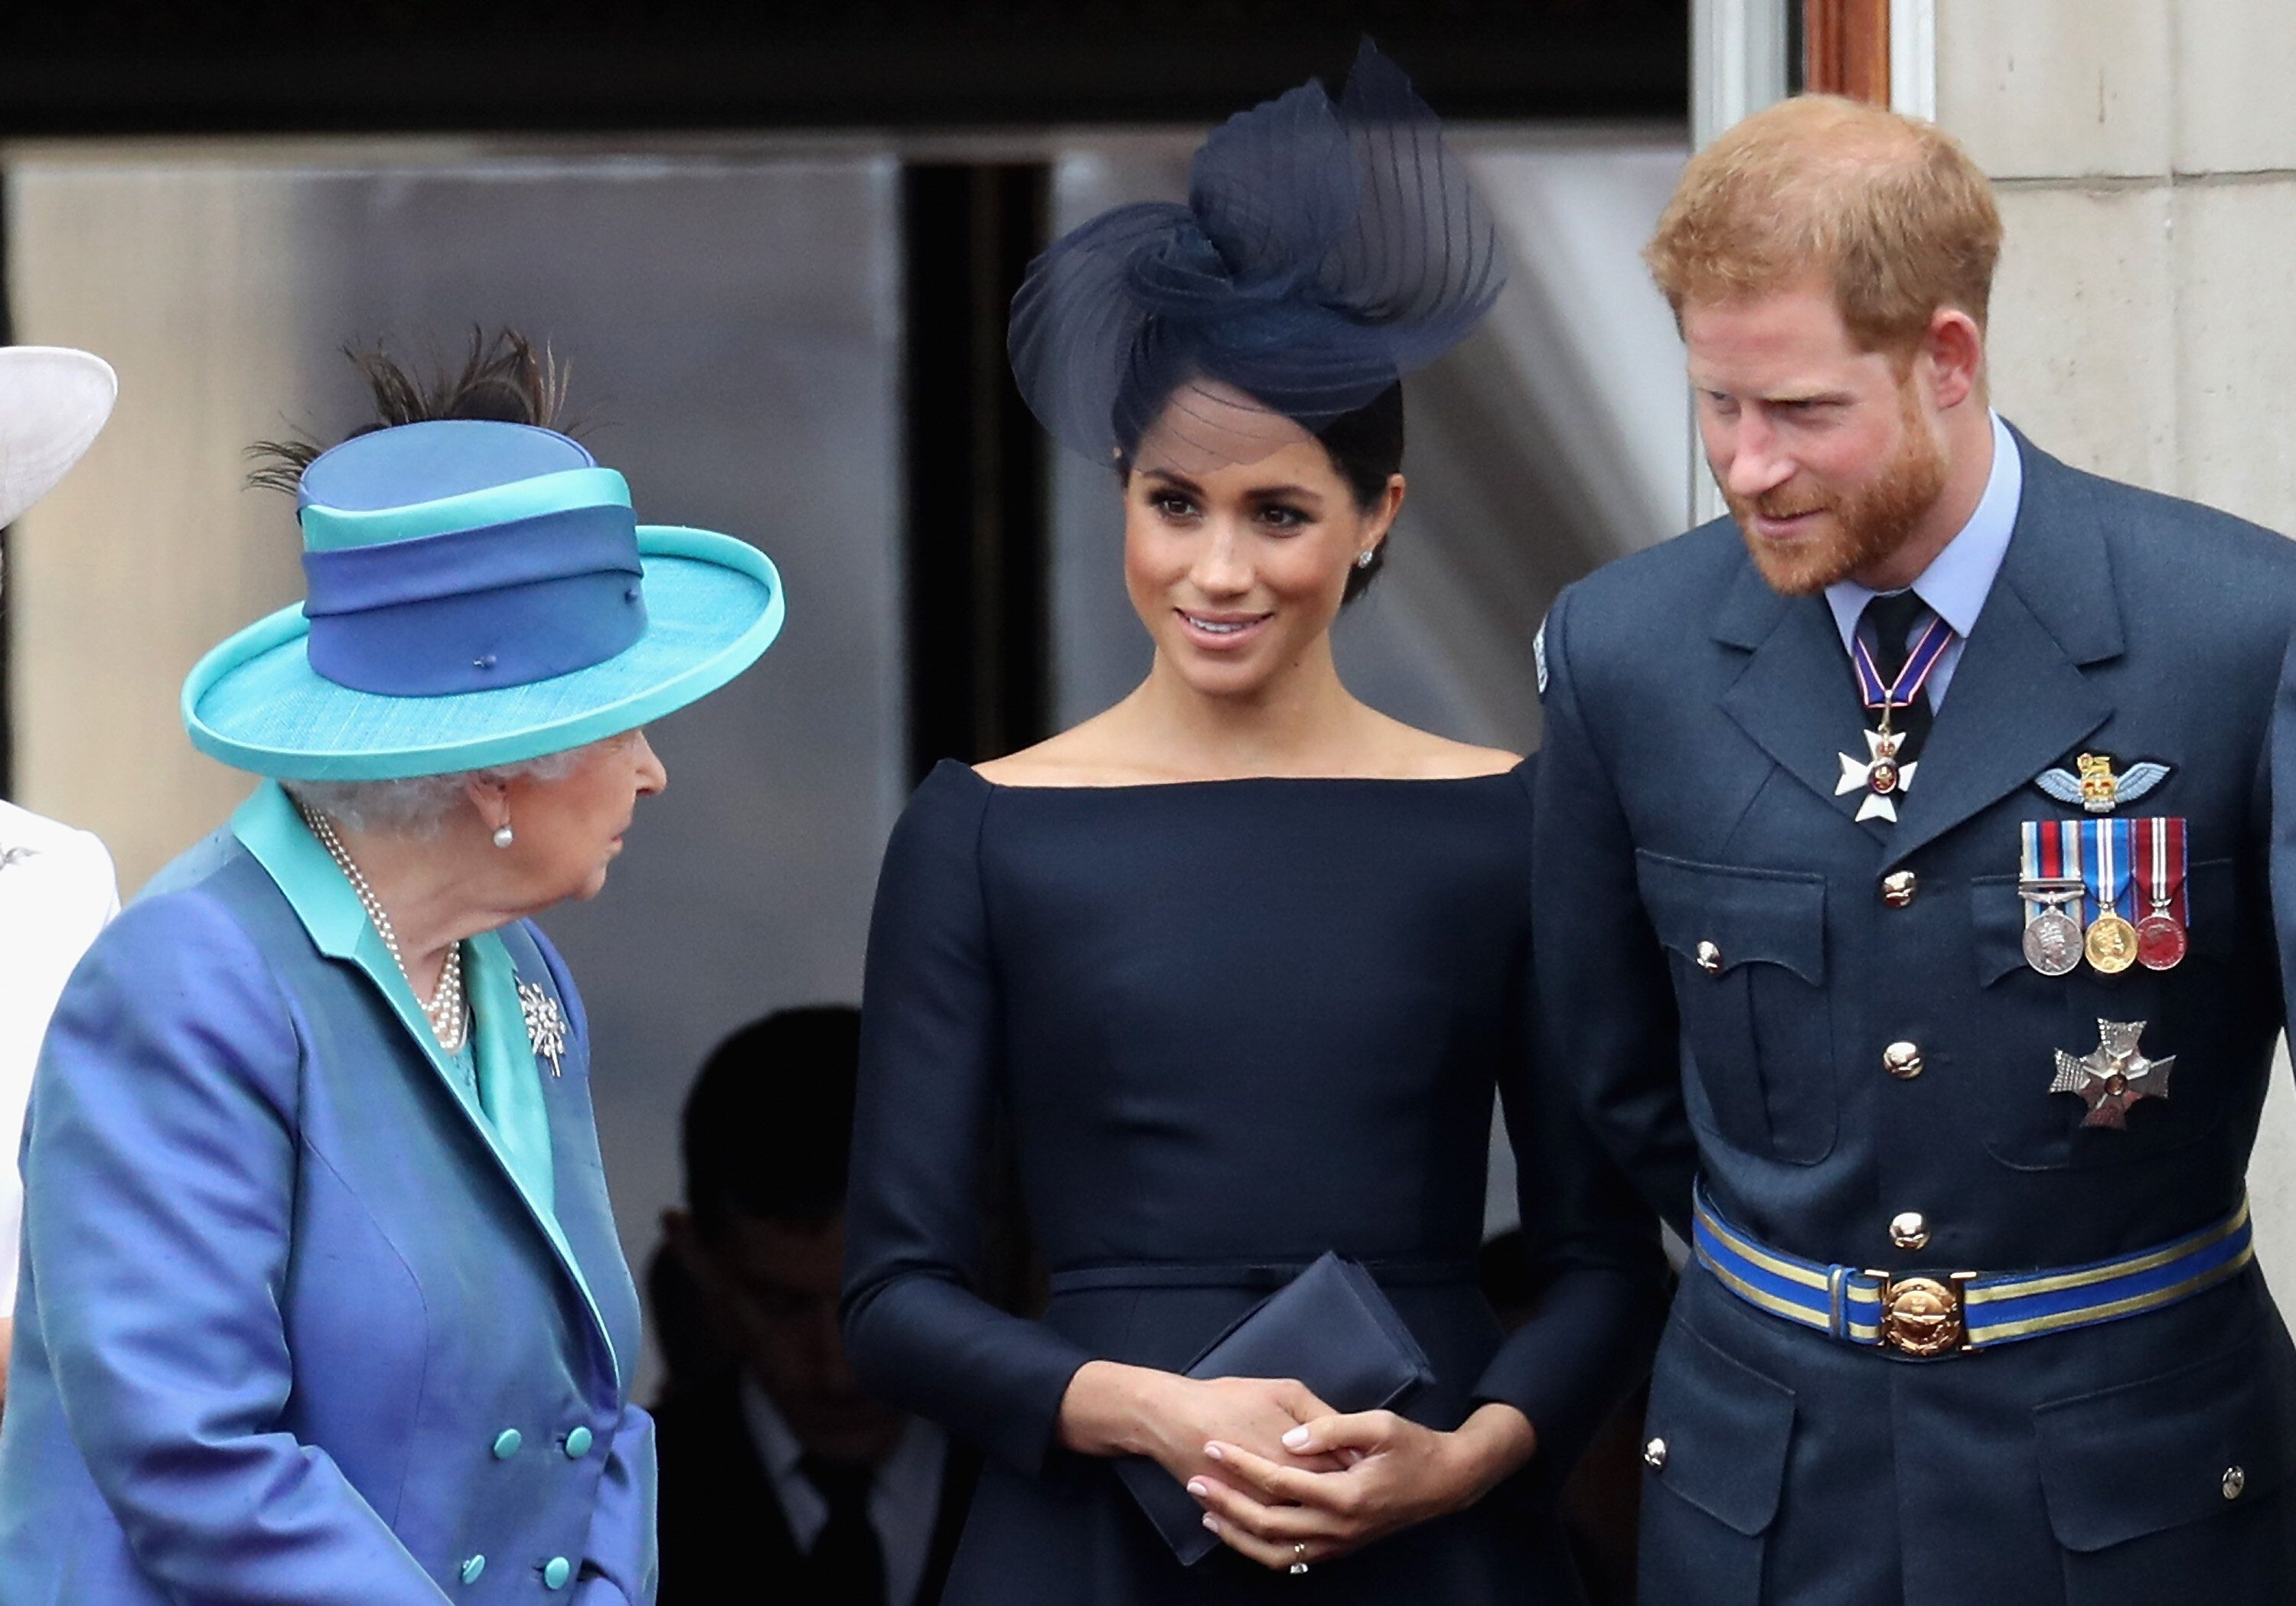 Queen Elizabeth II and the Duke and Duchess of Sussex chat on the balcony of Buckingham Palace on July 10, 2018.